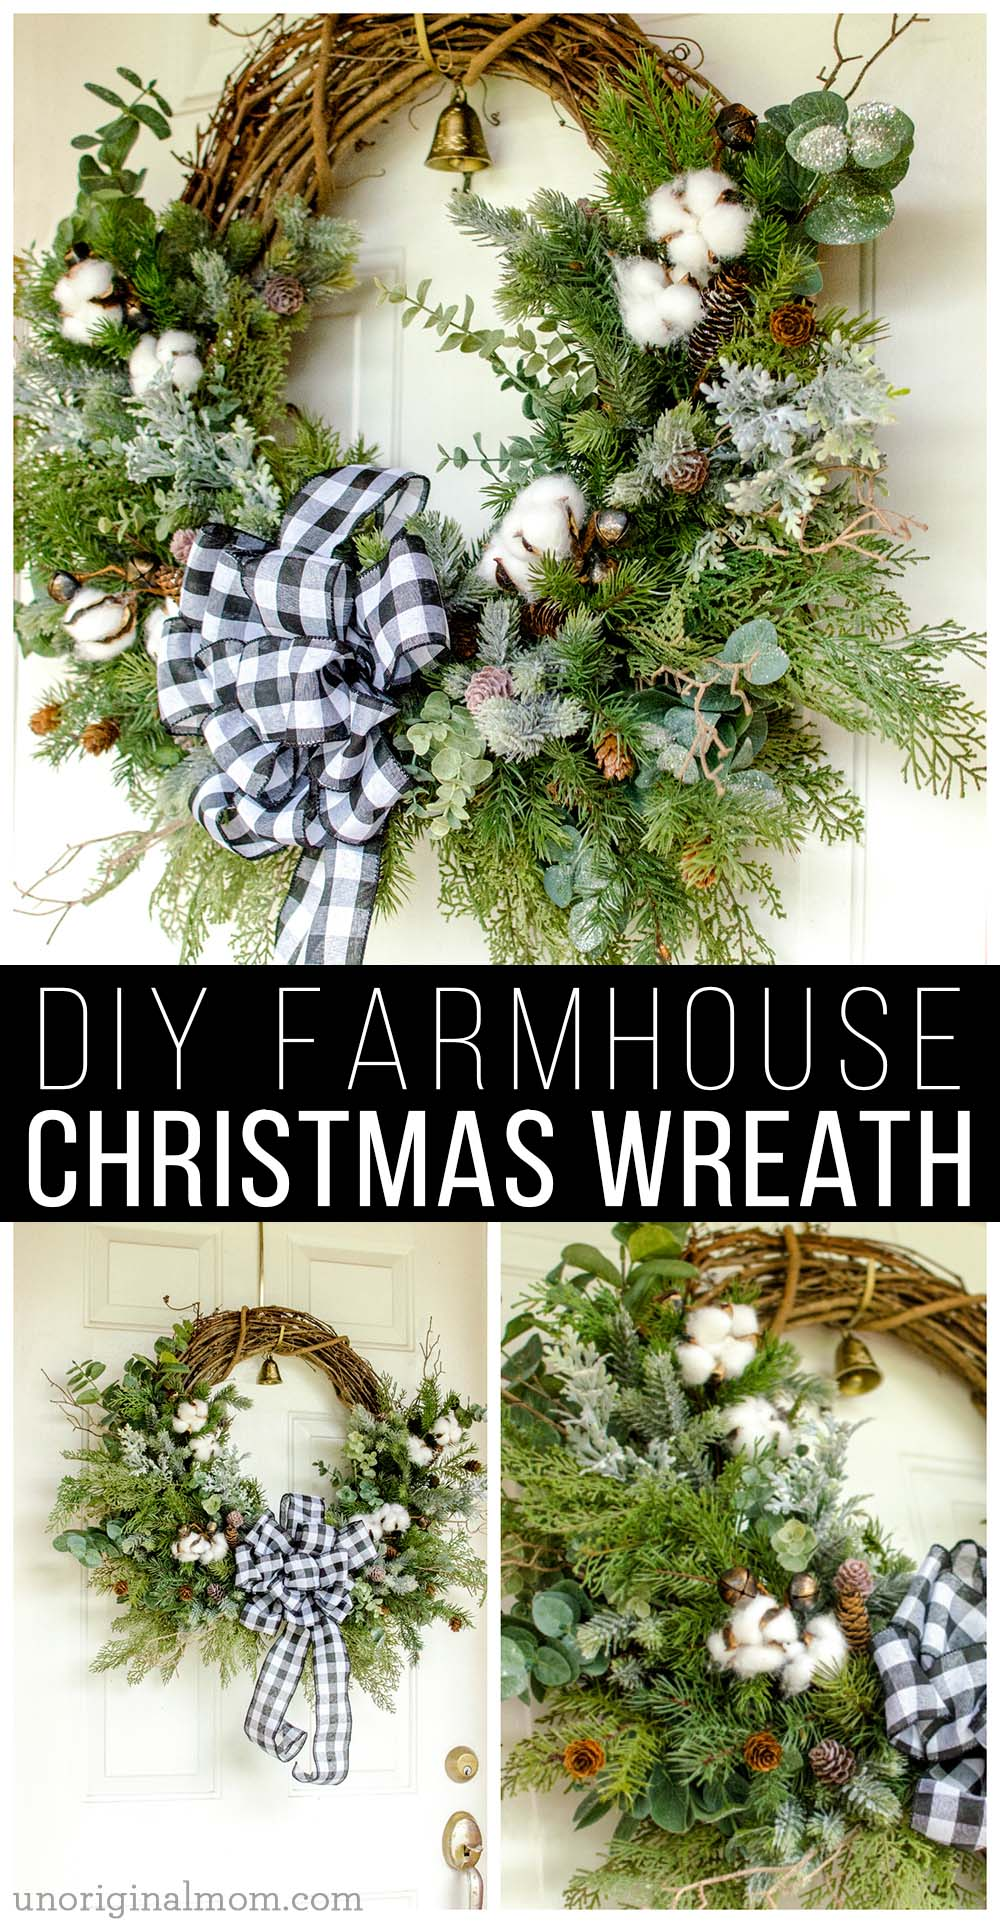 DIY Farmhouse Christmas Wreath - use a mix of evergreen faux florals with eucalyptus, cotton, and twigs to make a beautiful natural farmhouse christmas wreath!